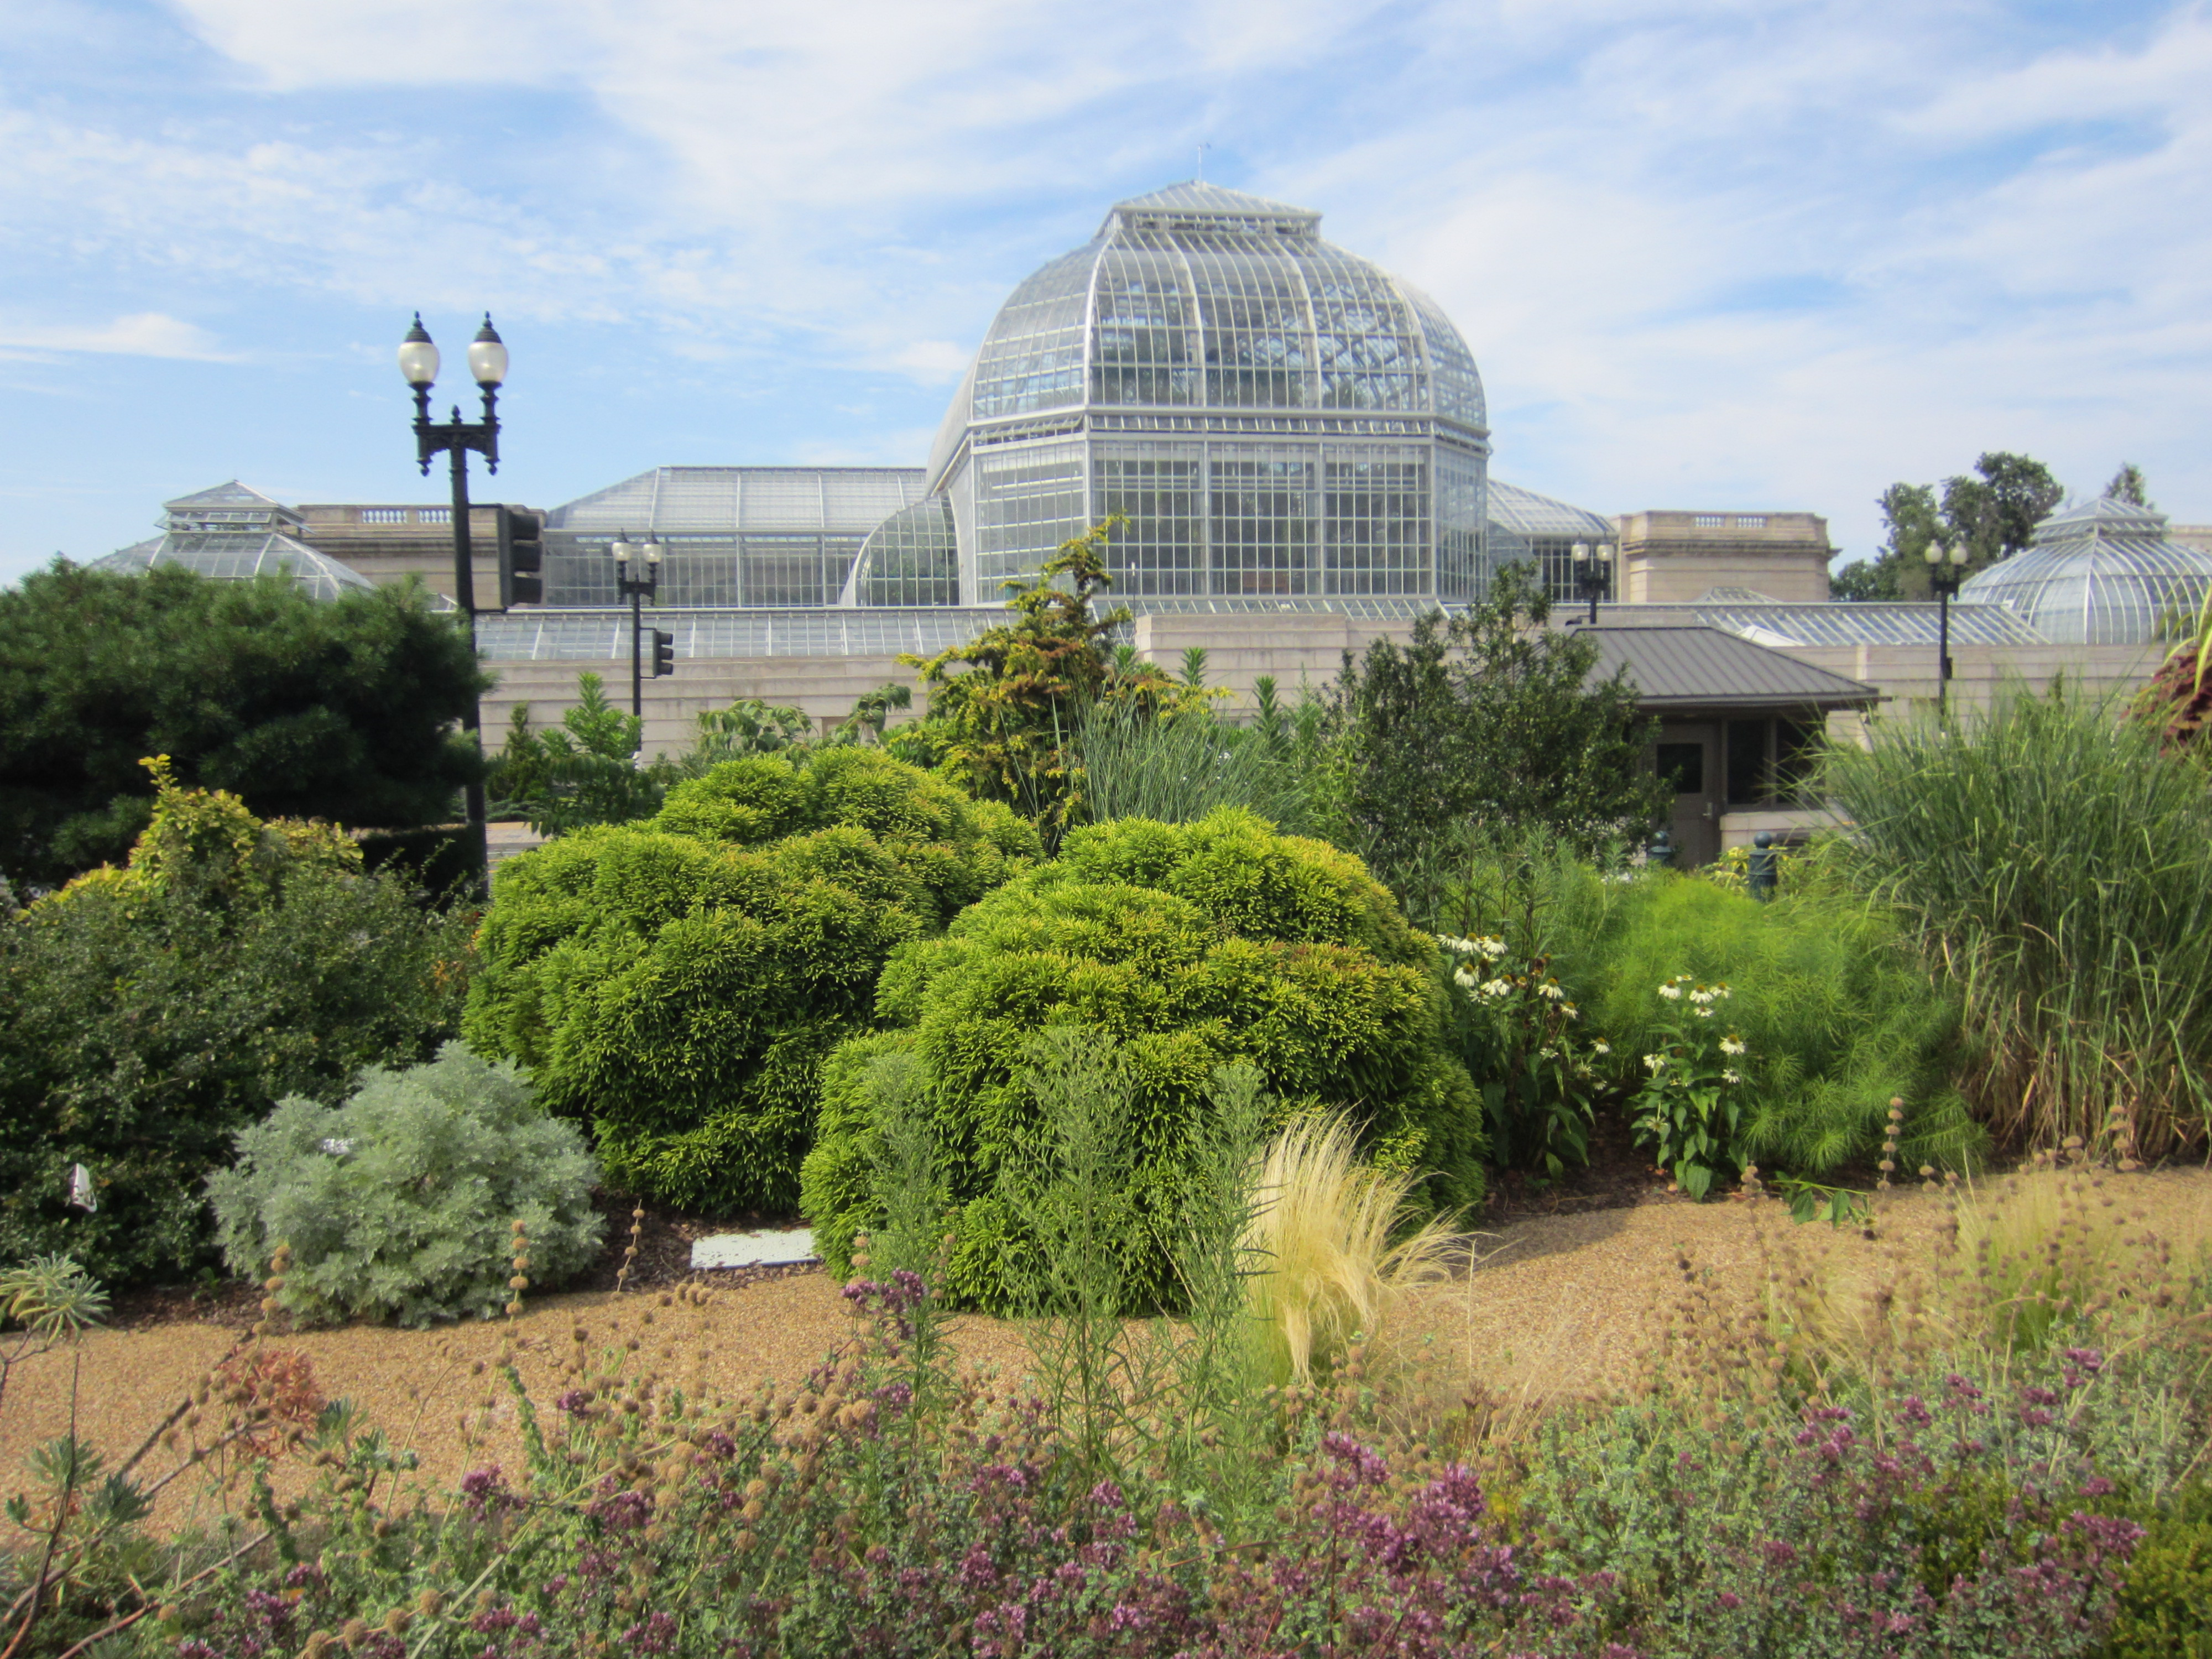 File:United States Botanic Garden, Washington, D.C.   2012.JPG